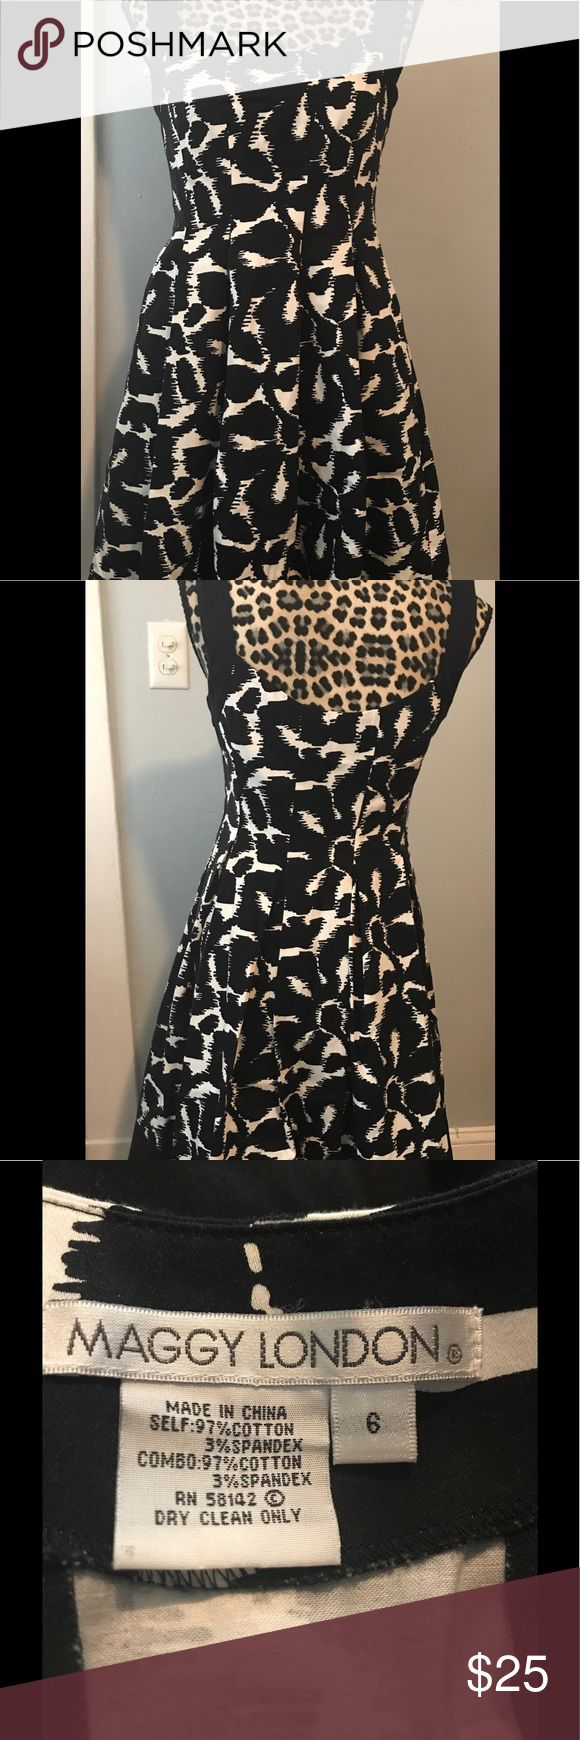 "Maggie London size 6 black & white floral dress Beautiful abstract floral pattern, black and white dress. It is perfect for a party or evening out. Hidden side zipper and clasp for securing the dress. Has cute pleats in the bottom which gives it a nice swirl when you turn. There is a small pull in the material, see last 2 photos. One close up and one from a slight distance. About 17.5"" wide (laid flat) across the bust, about 15"" wide across the waist, and about 30.5"" long ( from the center…"